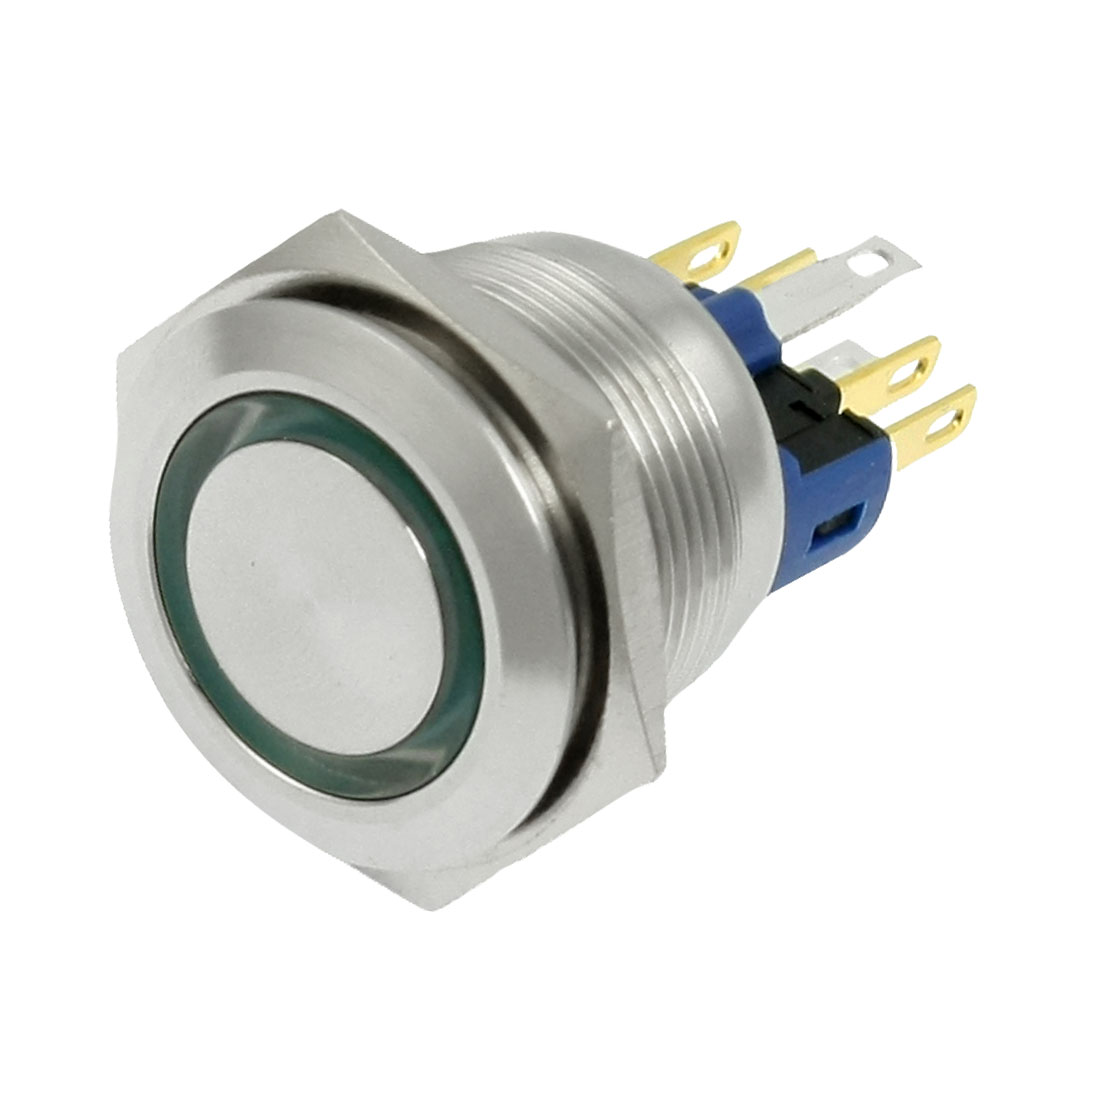 24V Green LED Stainless Push Button Switch 6 Screw Terminals